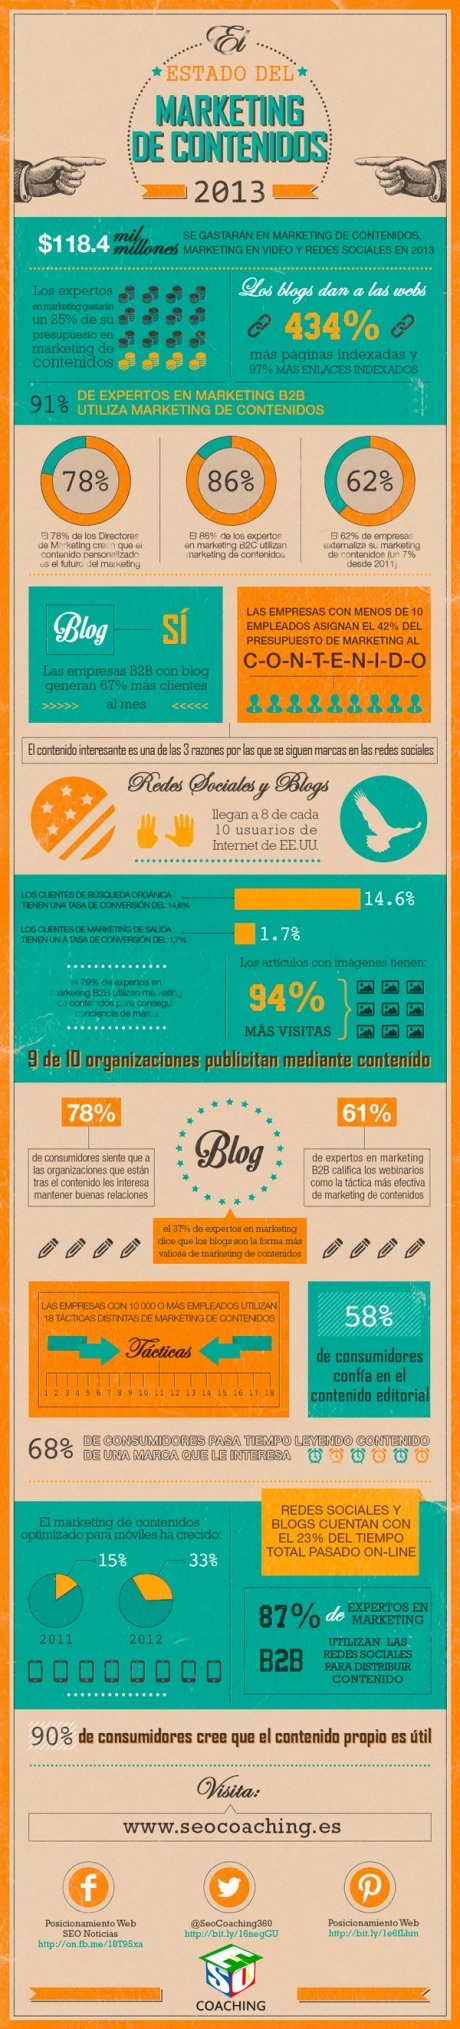 http://ticsyformacion.com/2013/10/16/situacion-de-marketing-de-contenidos-en-2013-infografia-infographic-marketing/